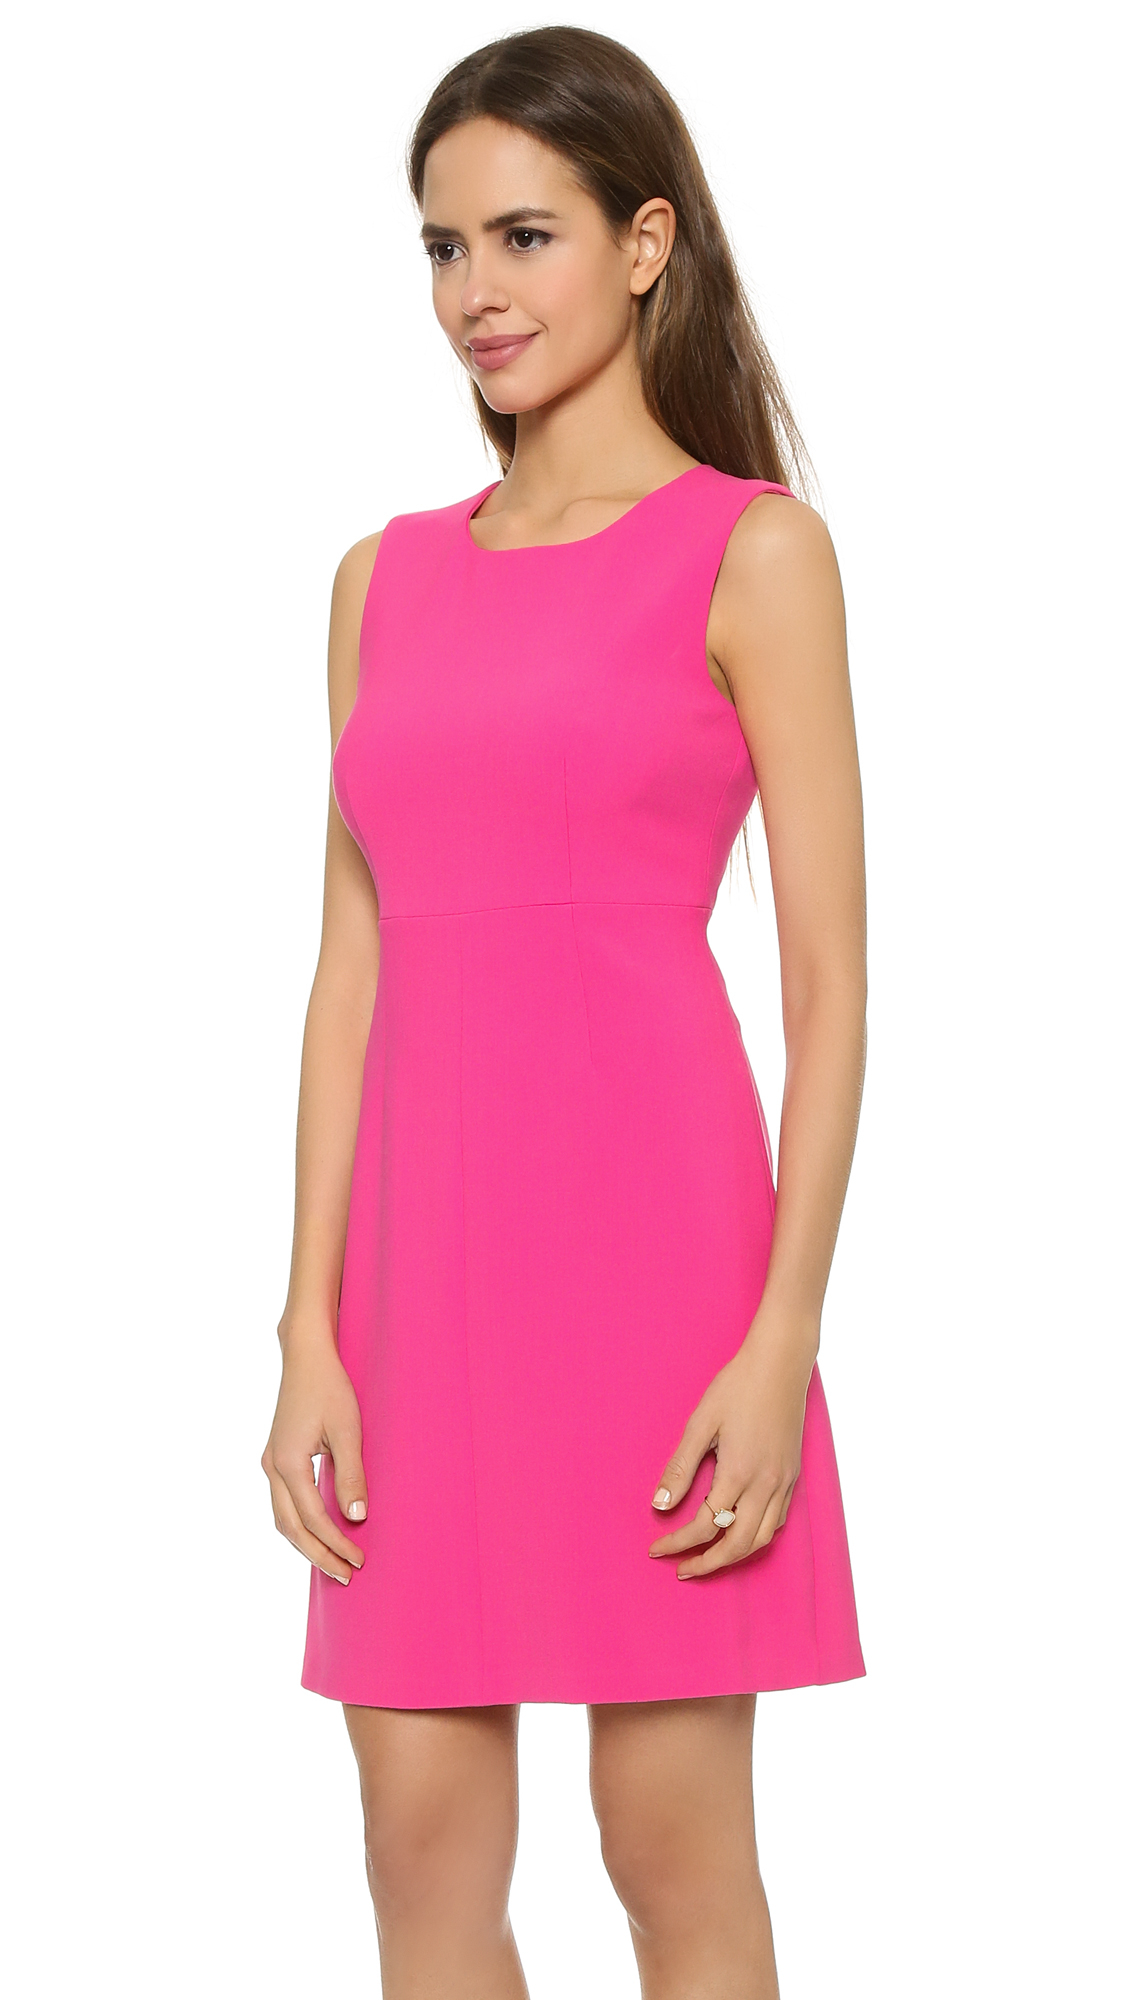 Diane von furstenberg pink dress dress yp for Diane von furstenberg clothes